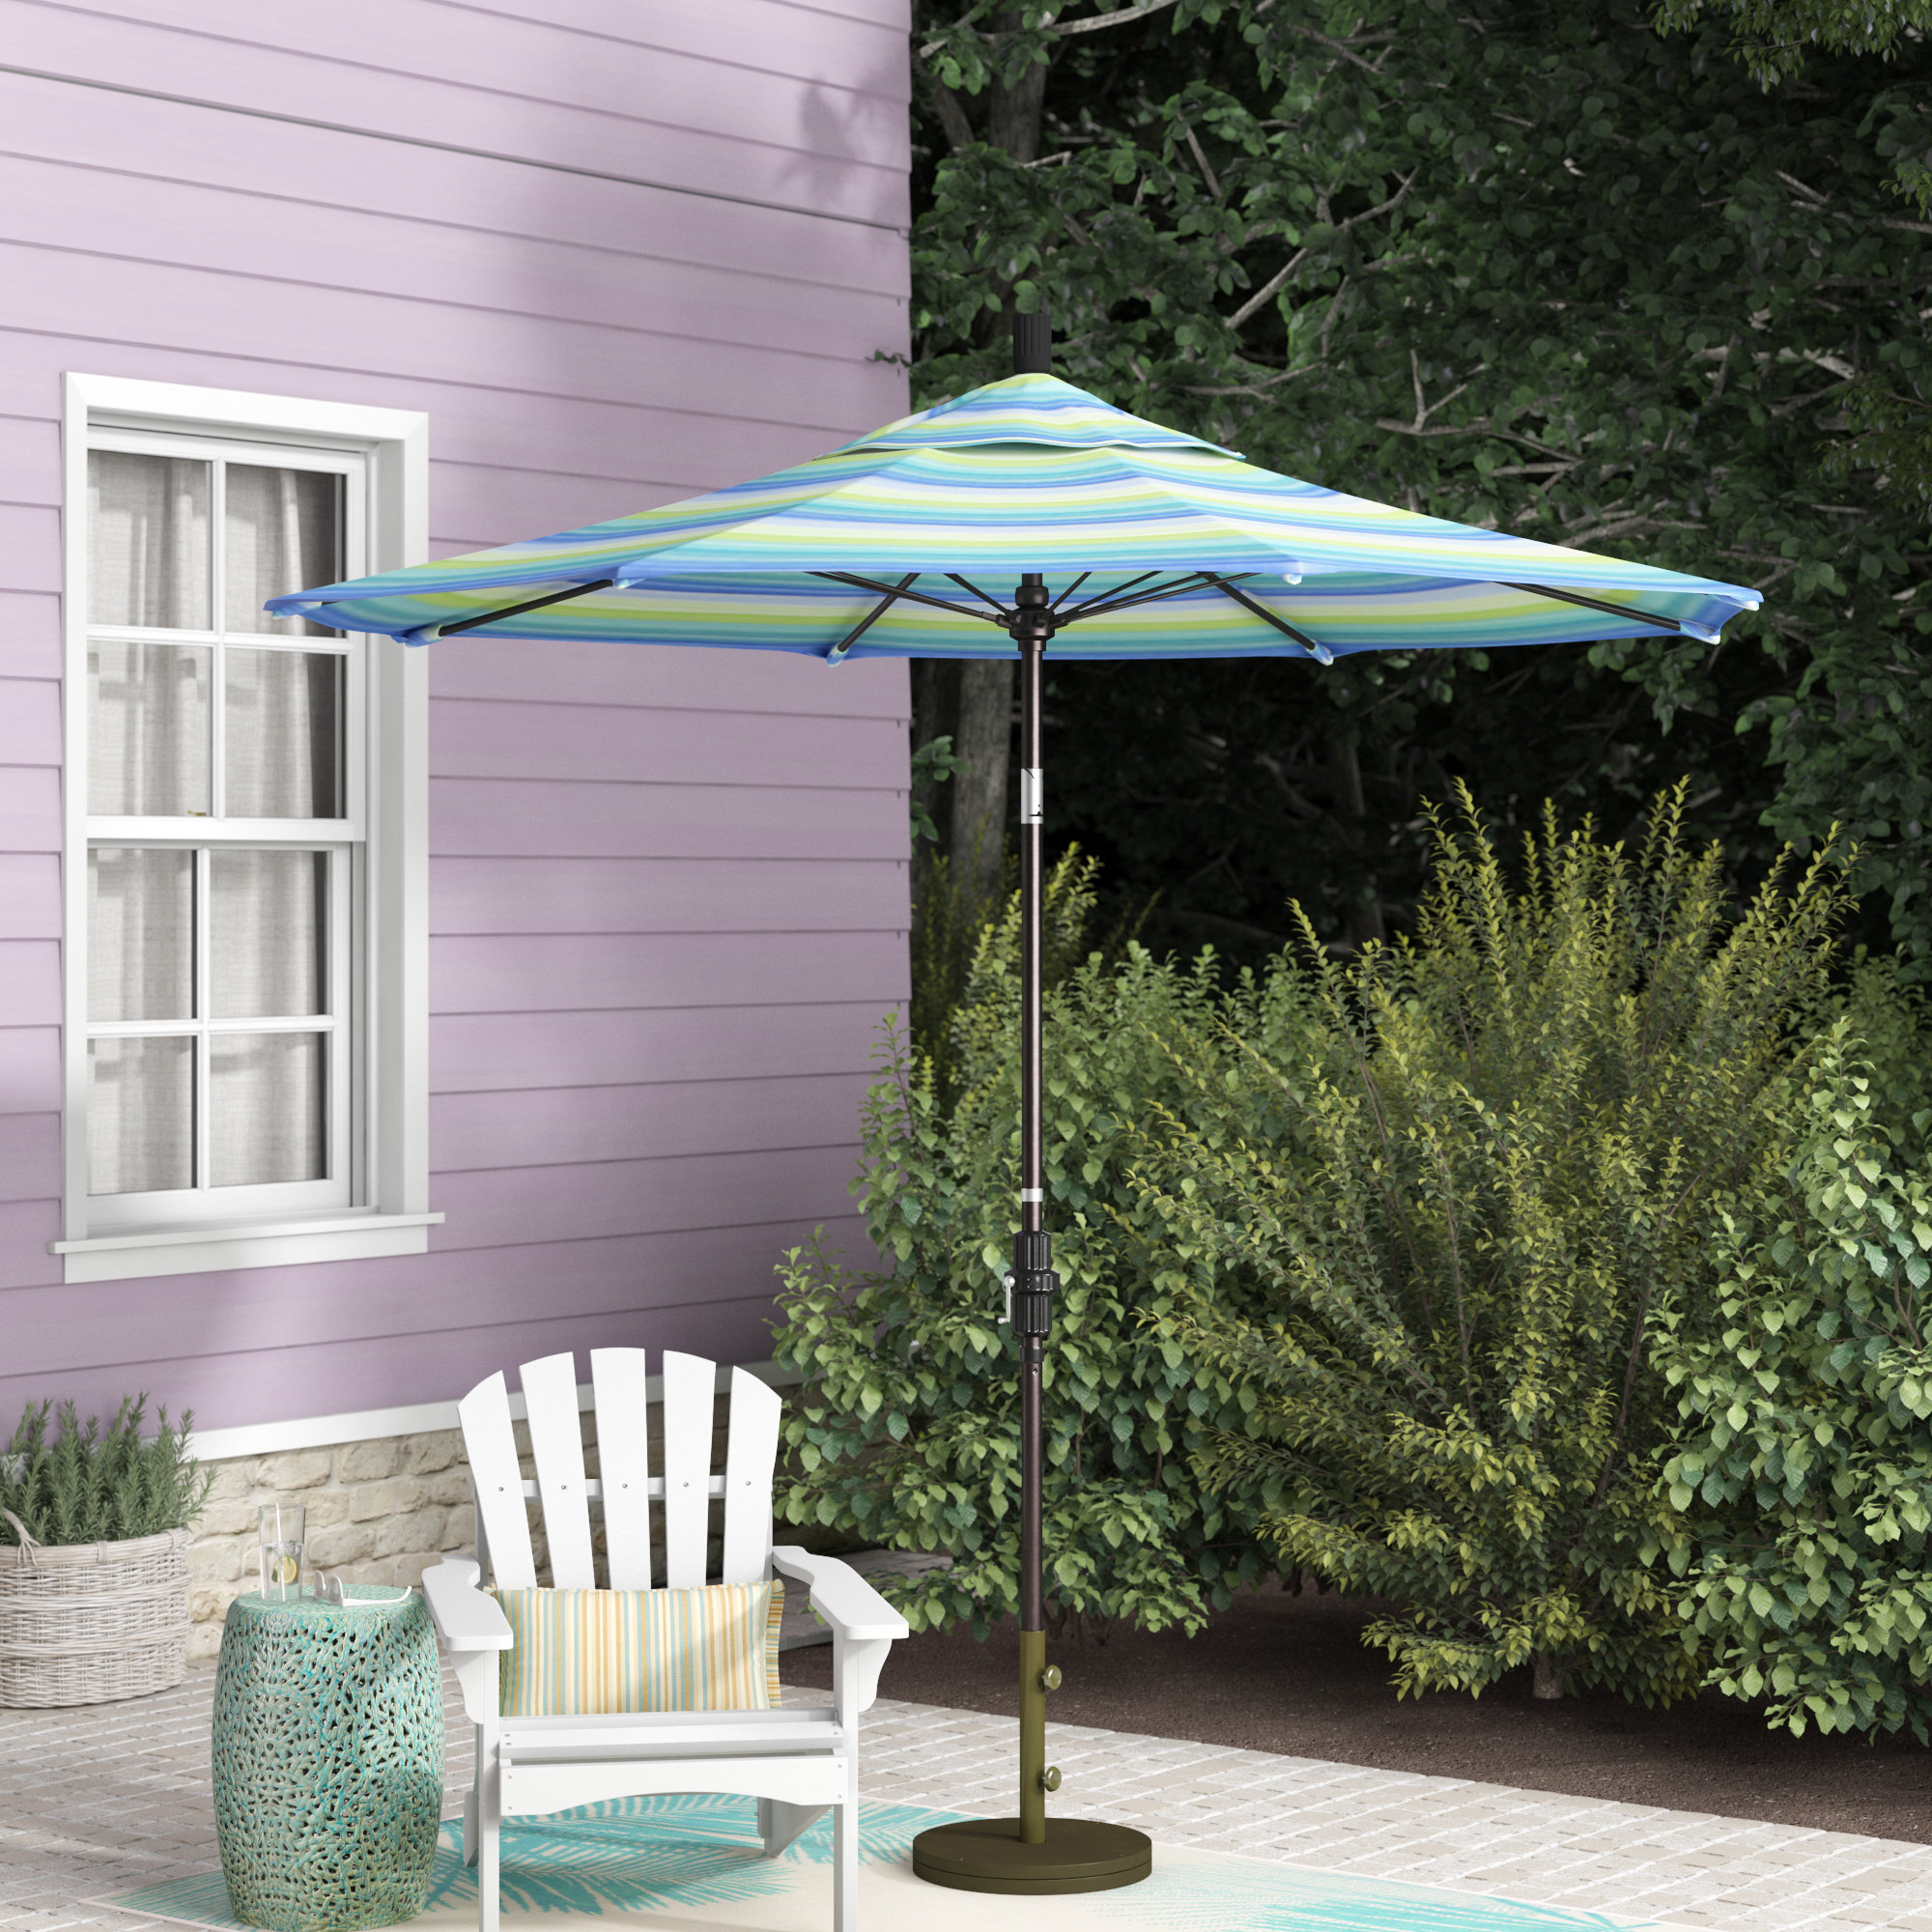 Muldoon 7.5' Market Sunbrella Umbrella Within Favorite Wiebe Auto Tilt Square Market Sunbrella Umbrellas (Gallery 11 of 20)